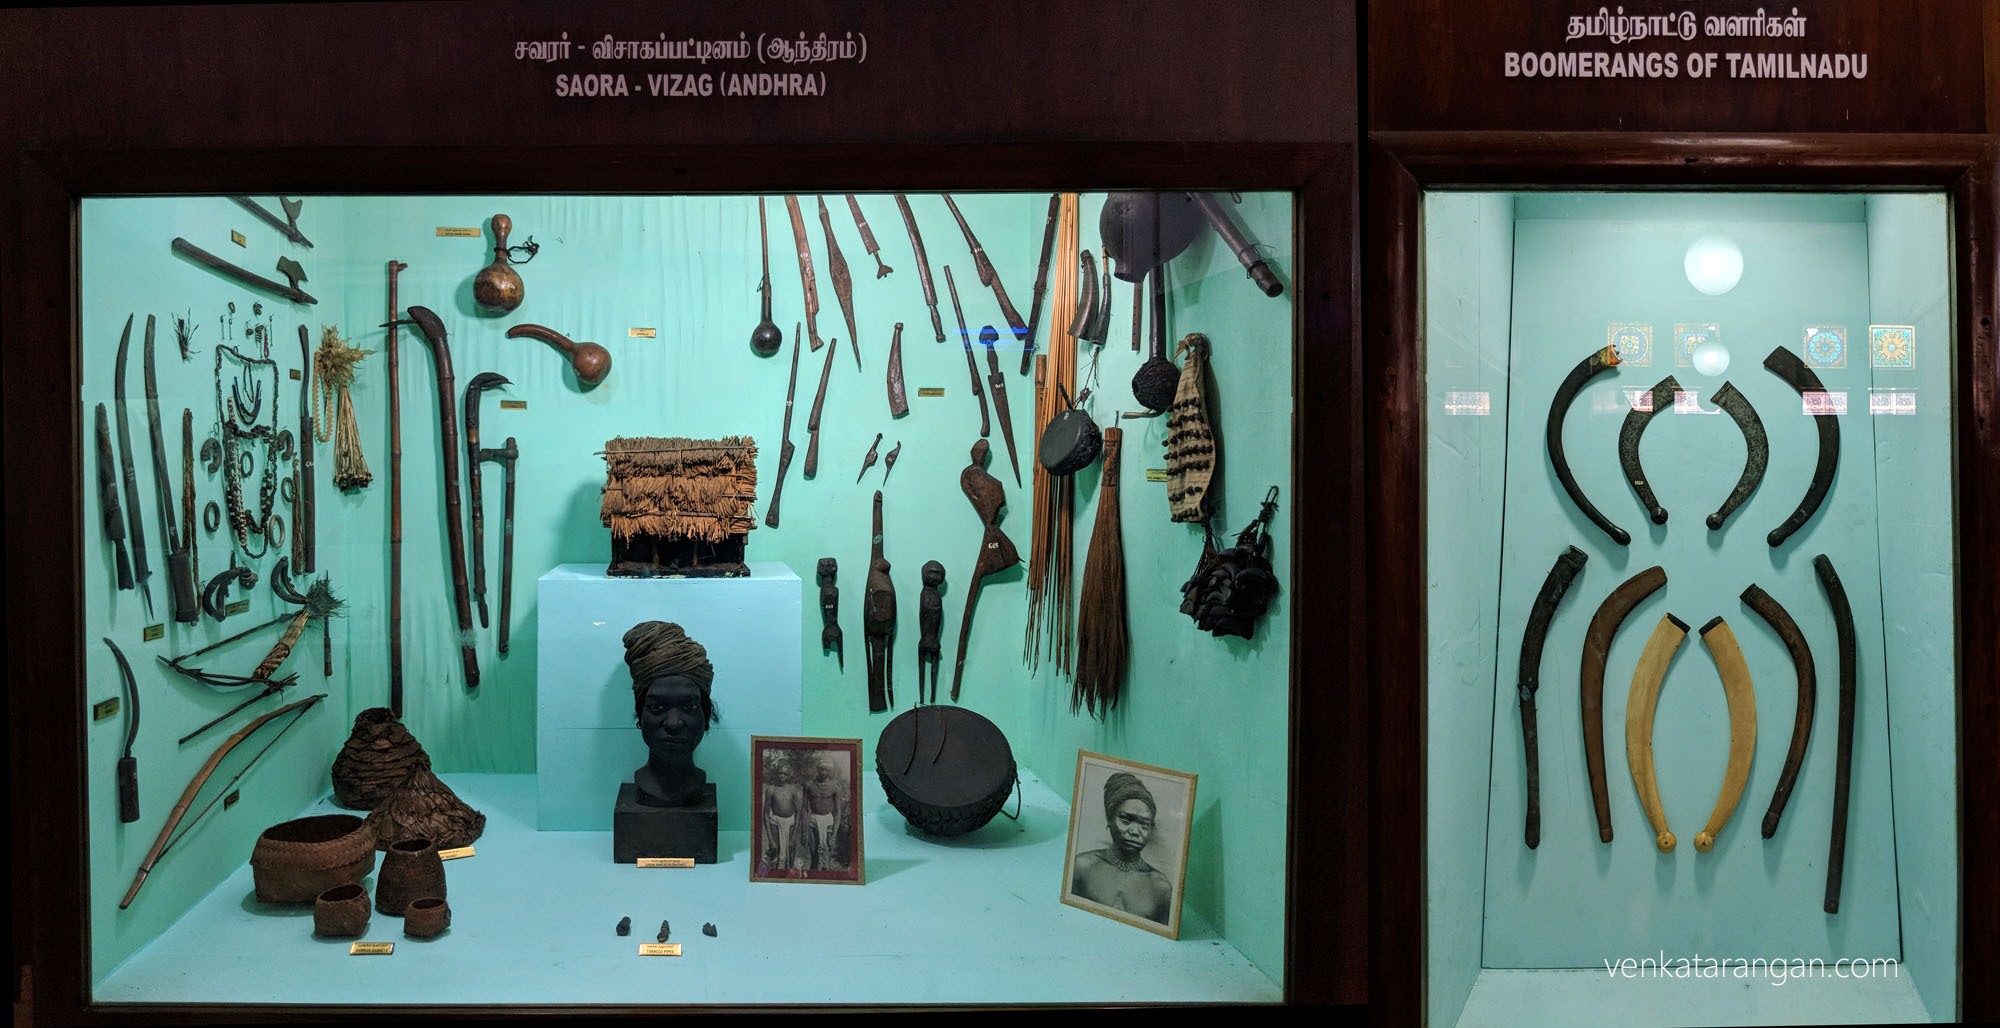 Left-Saora Tribe of Vizak's belongings.Right-Boomerangs of Tamil Nadu (தமிழ்நாட்டு வளரிகள்), and I thought these were found only in Australia!